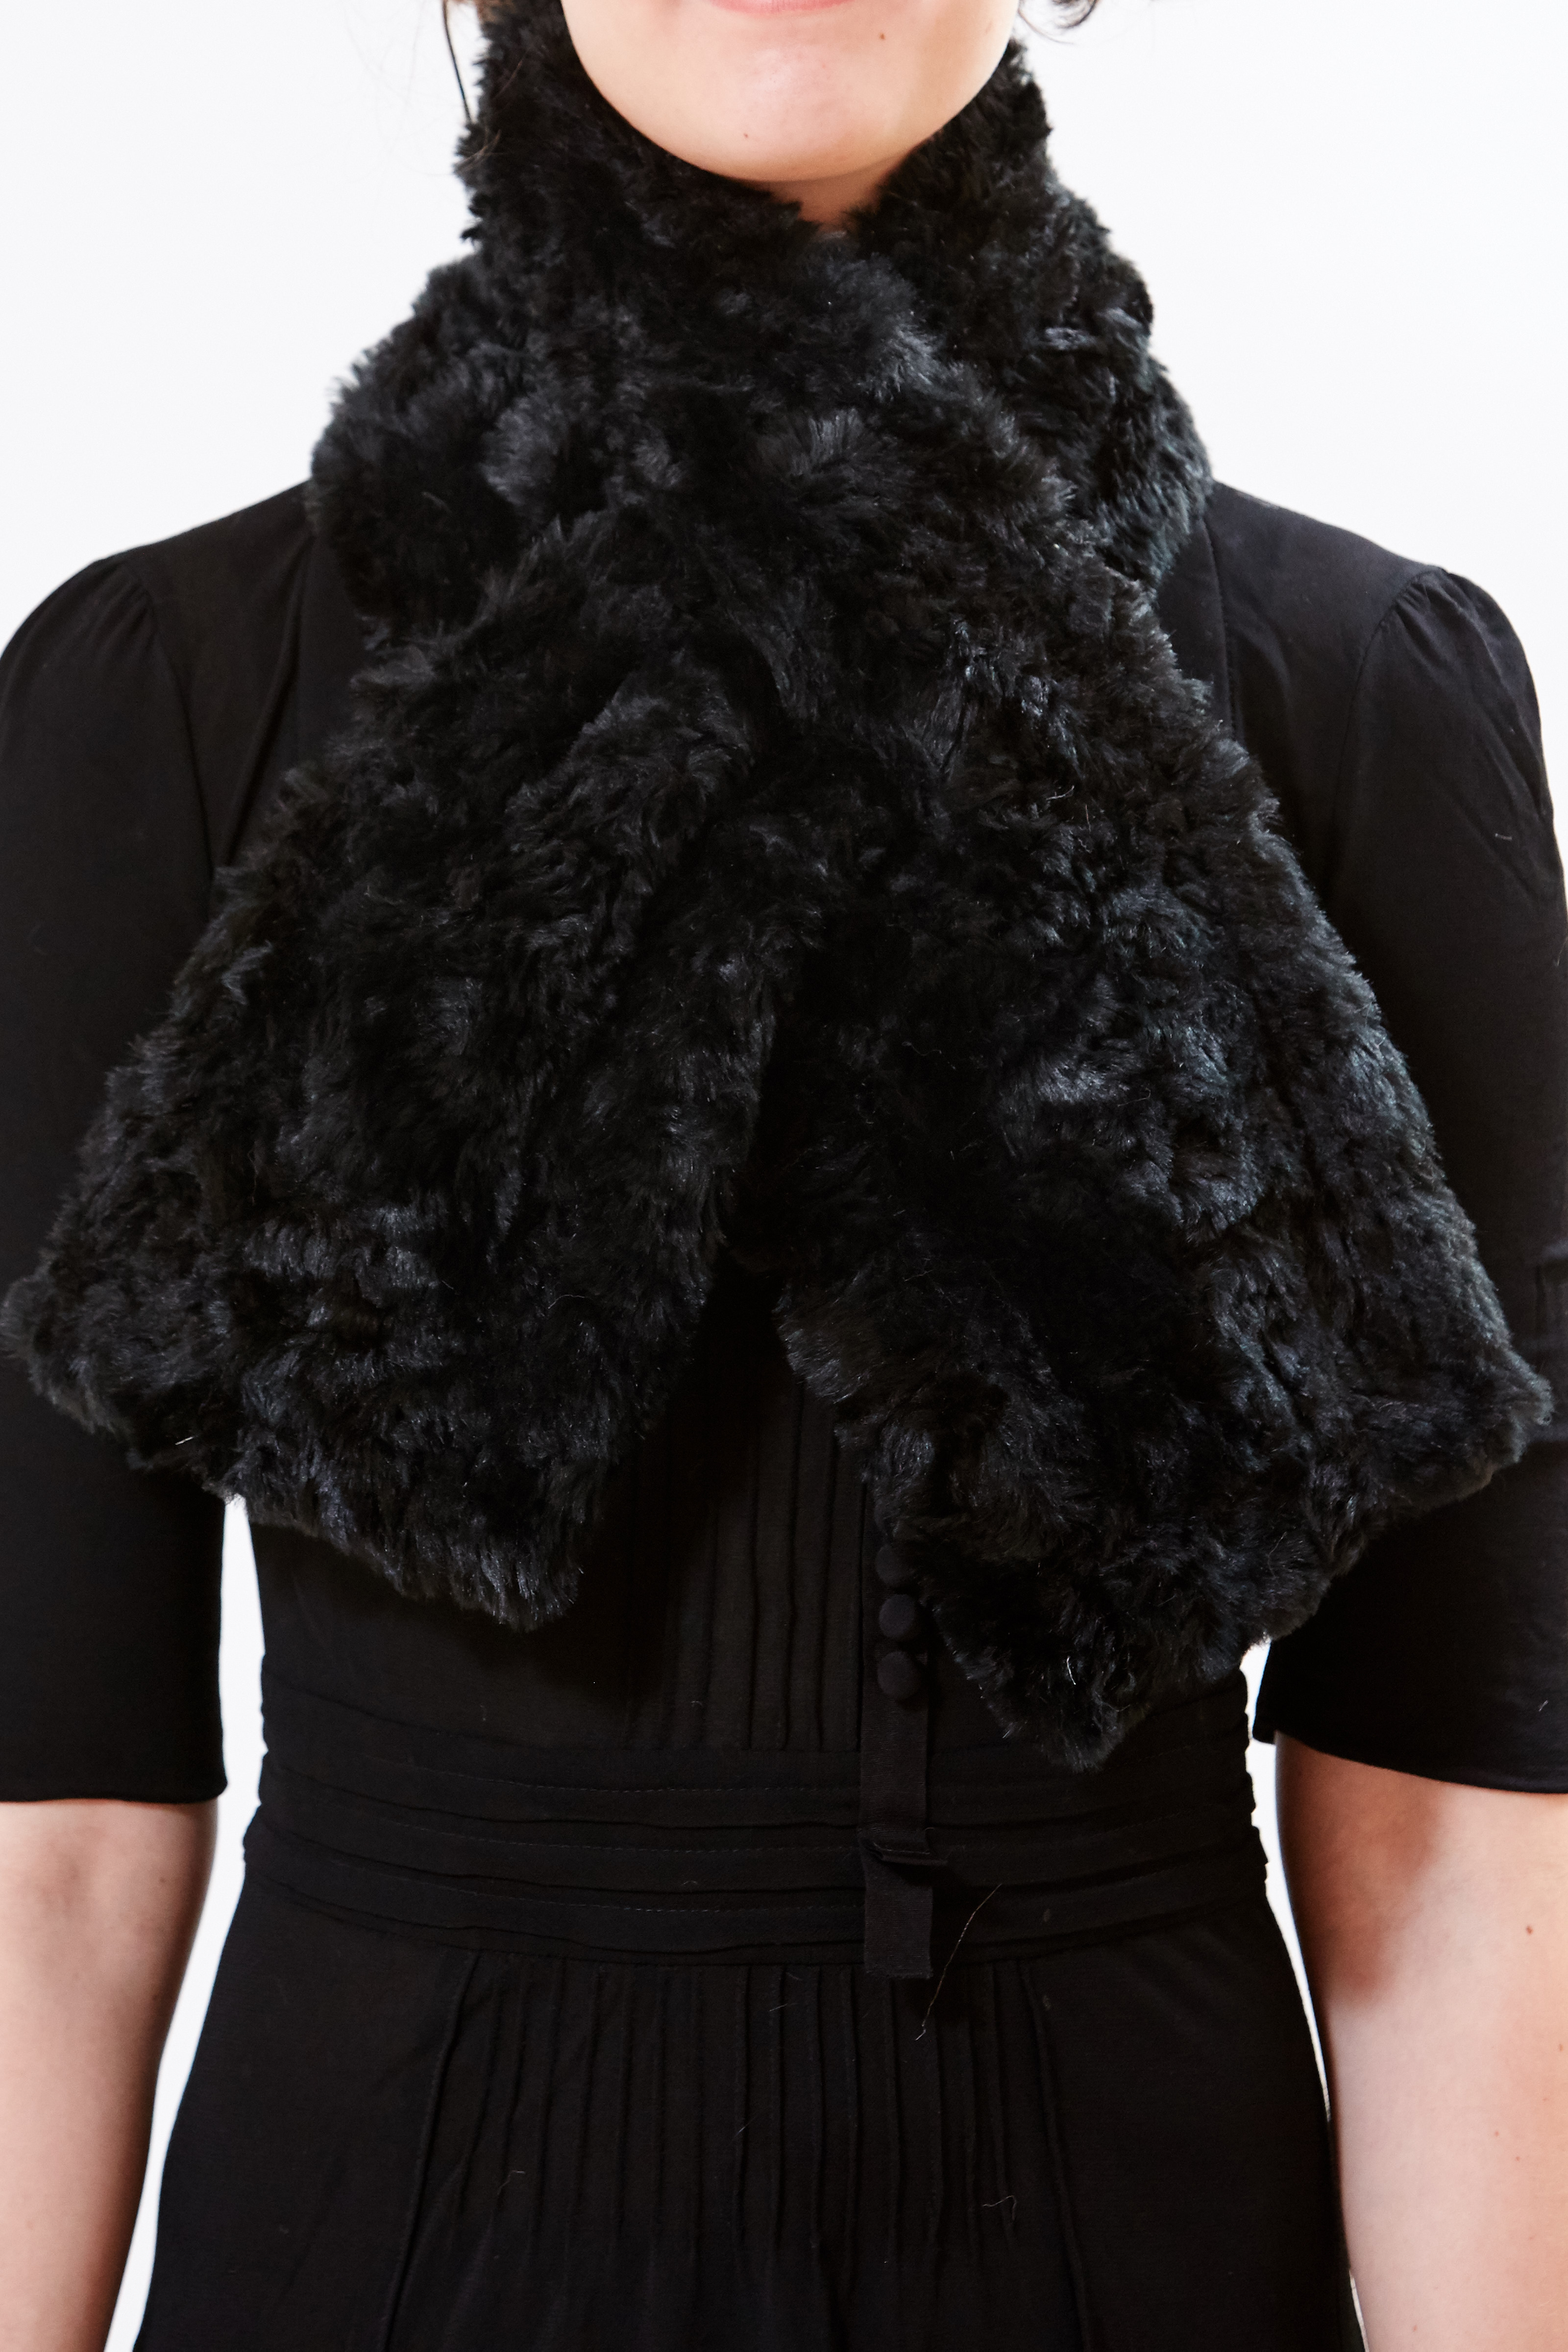 Scarf - Noir Reversible by Maison Atia on curated-crowd.com